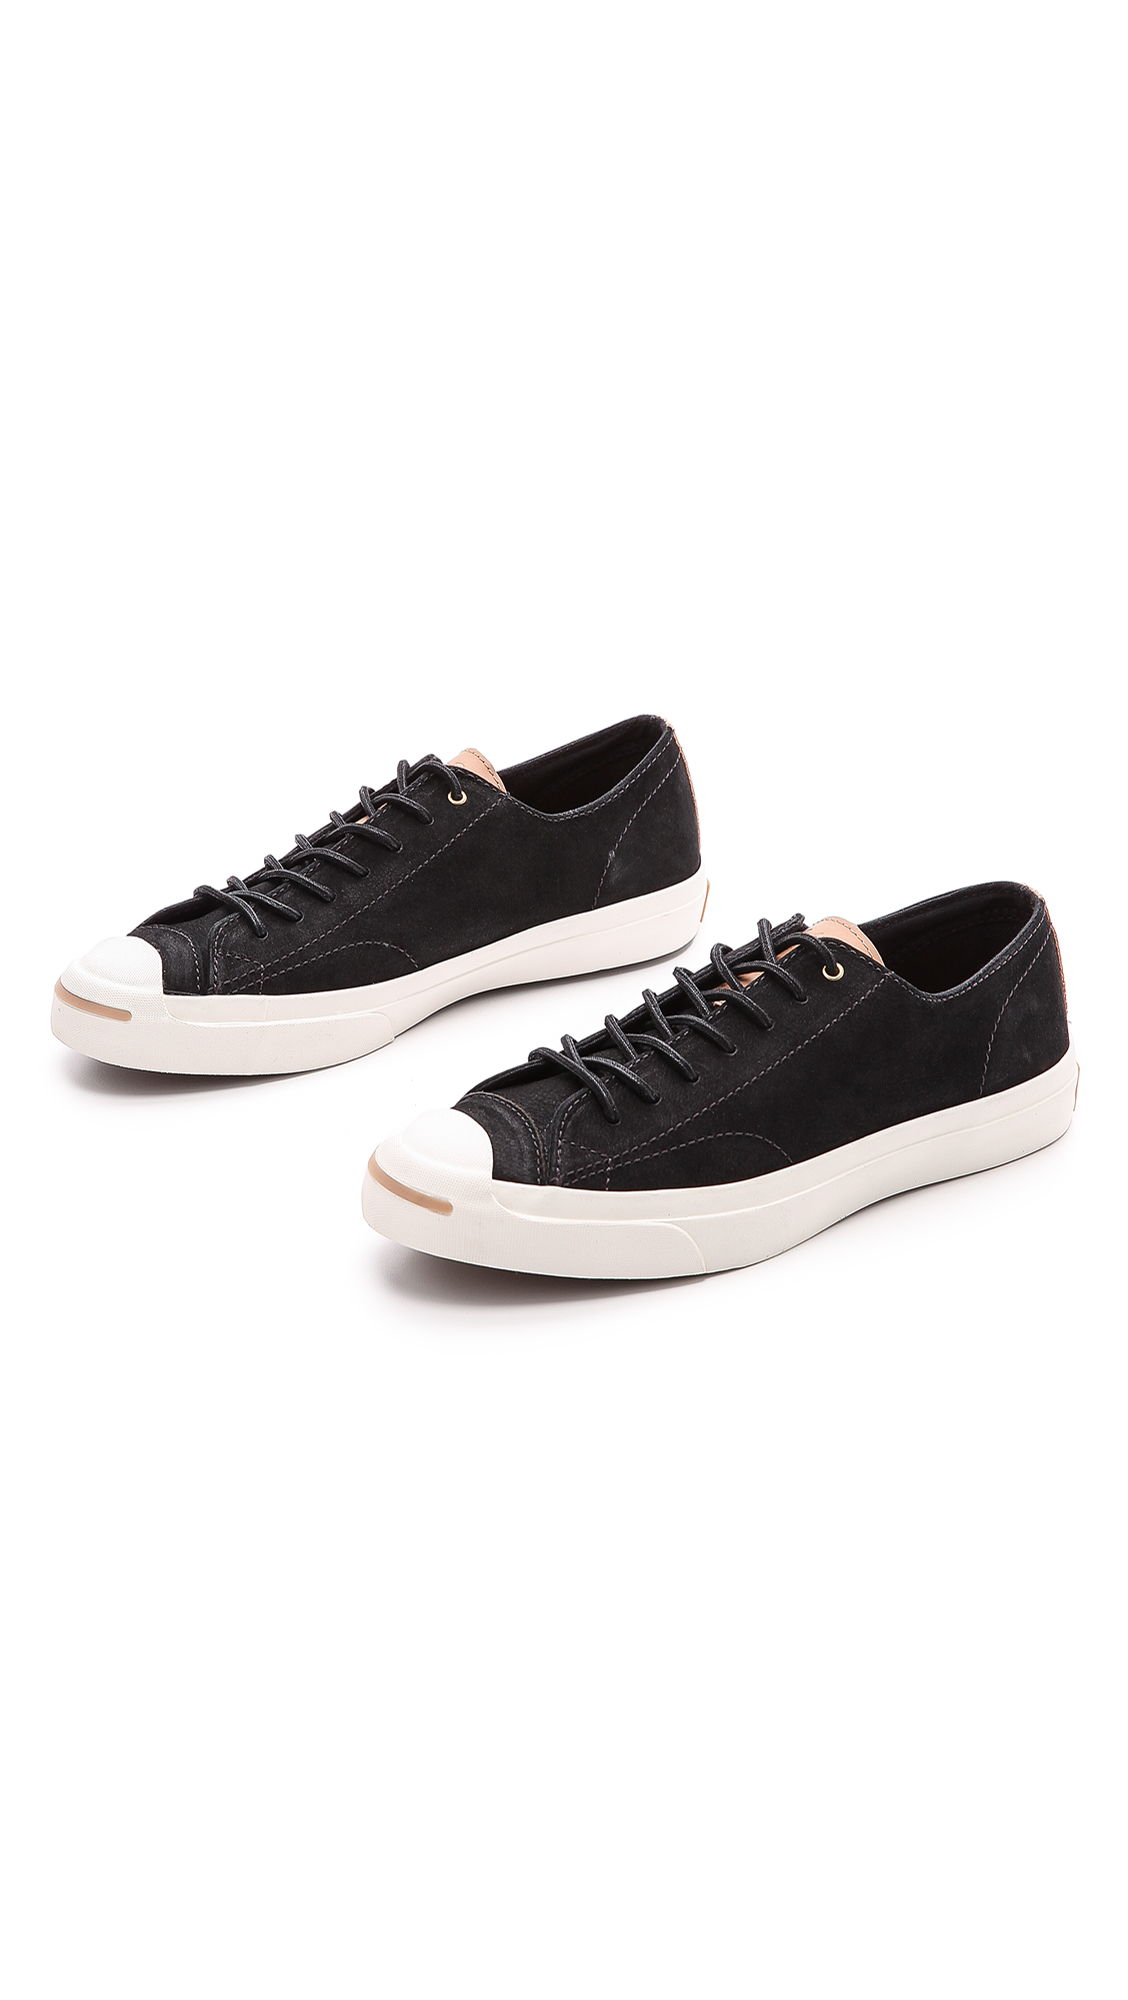 e9a16e952f91 Lyst - Converse Jack Purcell Split Tongue Jack Sneakers in Black for Men